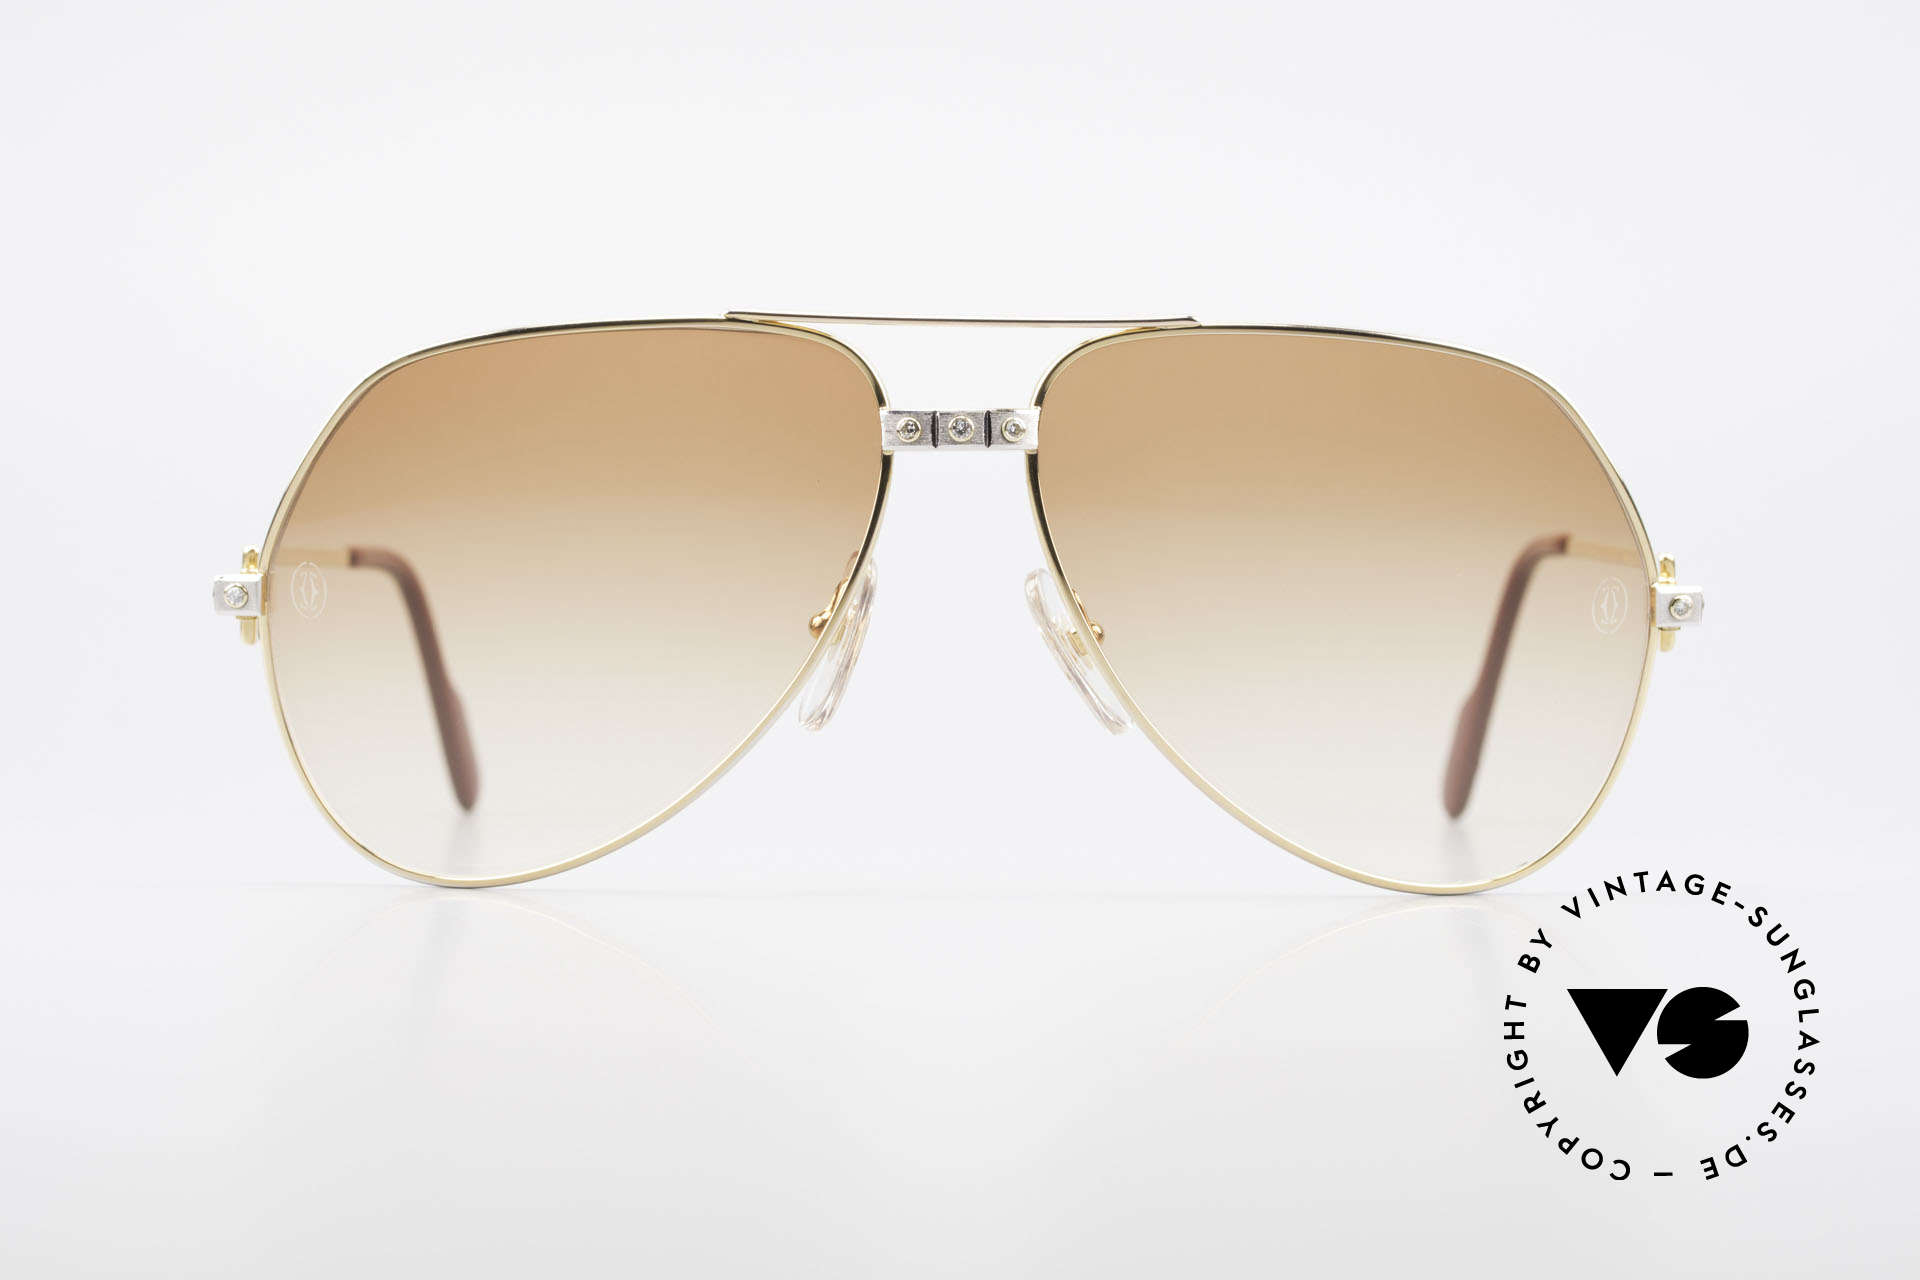 Cartier Vendome Santos - L Customized Diamond Shades, extremely expensive refined frame for even more luxury, Made for Men